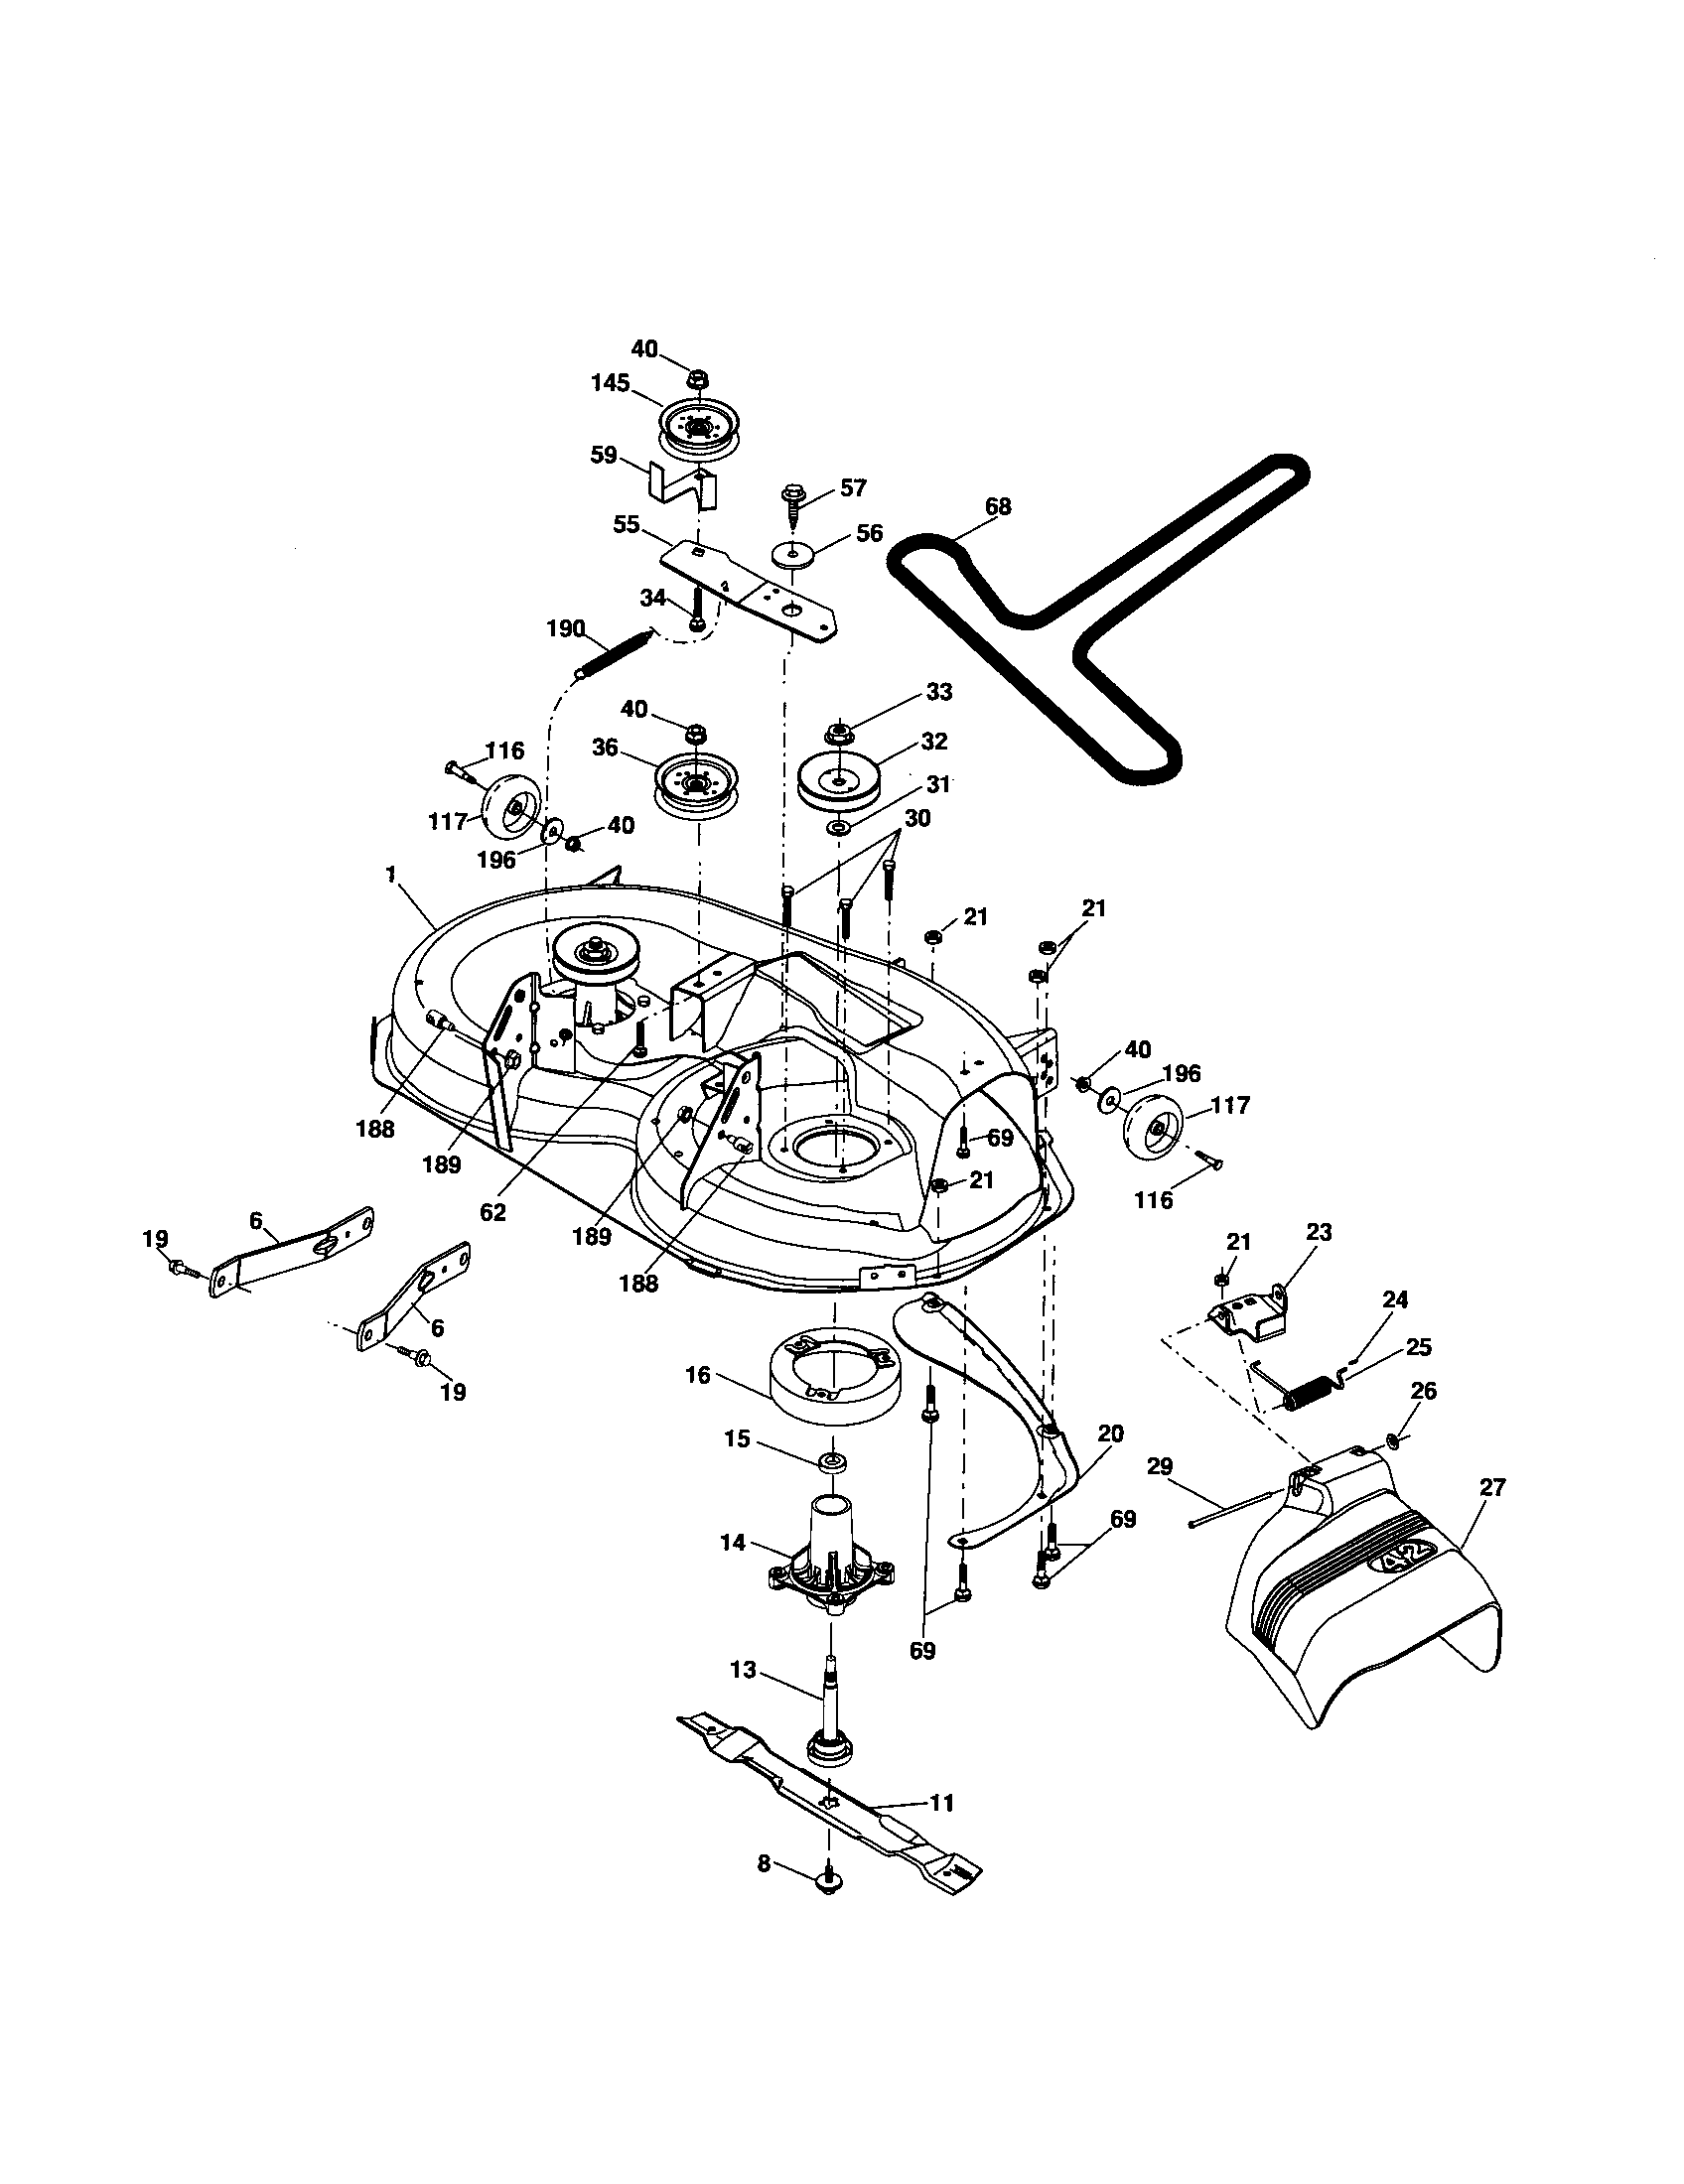 husqvarna lawn tractor parts diagram 2005 honda civic stereo wiring mower deck and list for model yth2242t